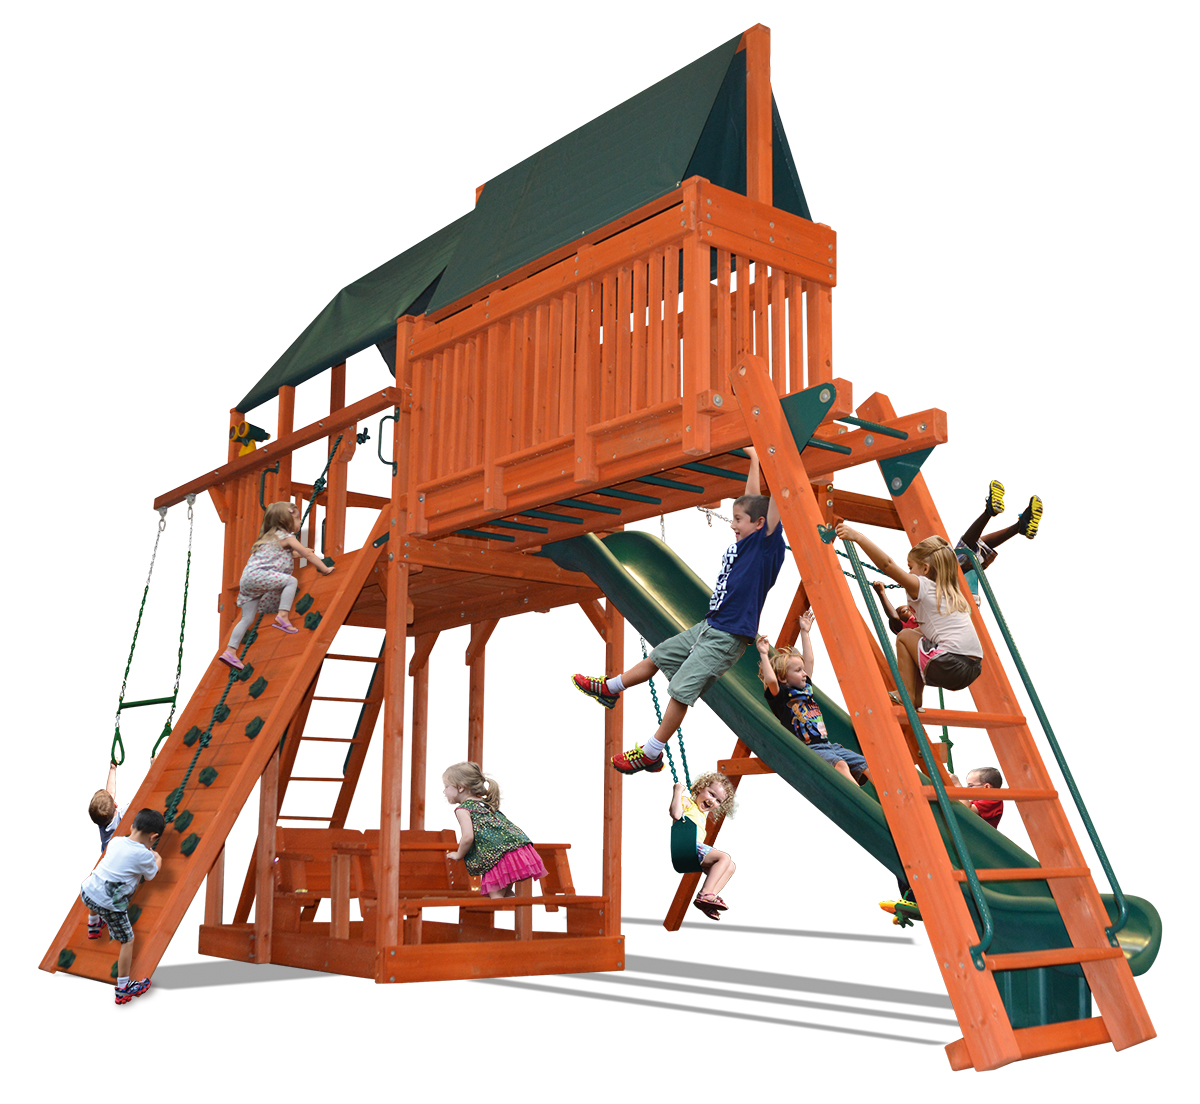 Extreme Fort Combo 4 play set with premier picnic table, monkey bars and skyloft